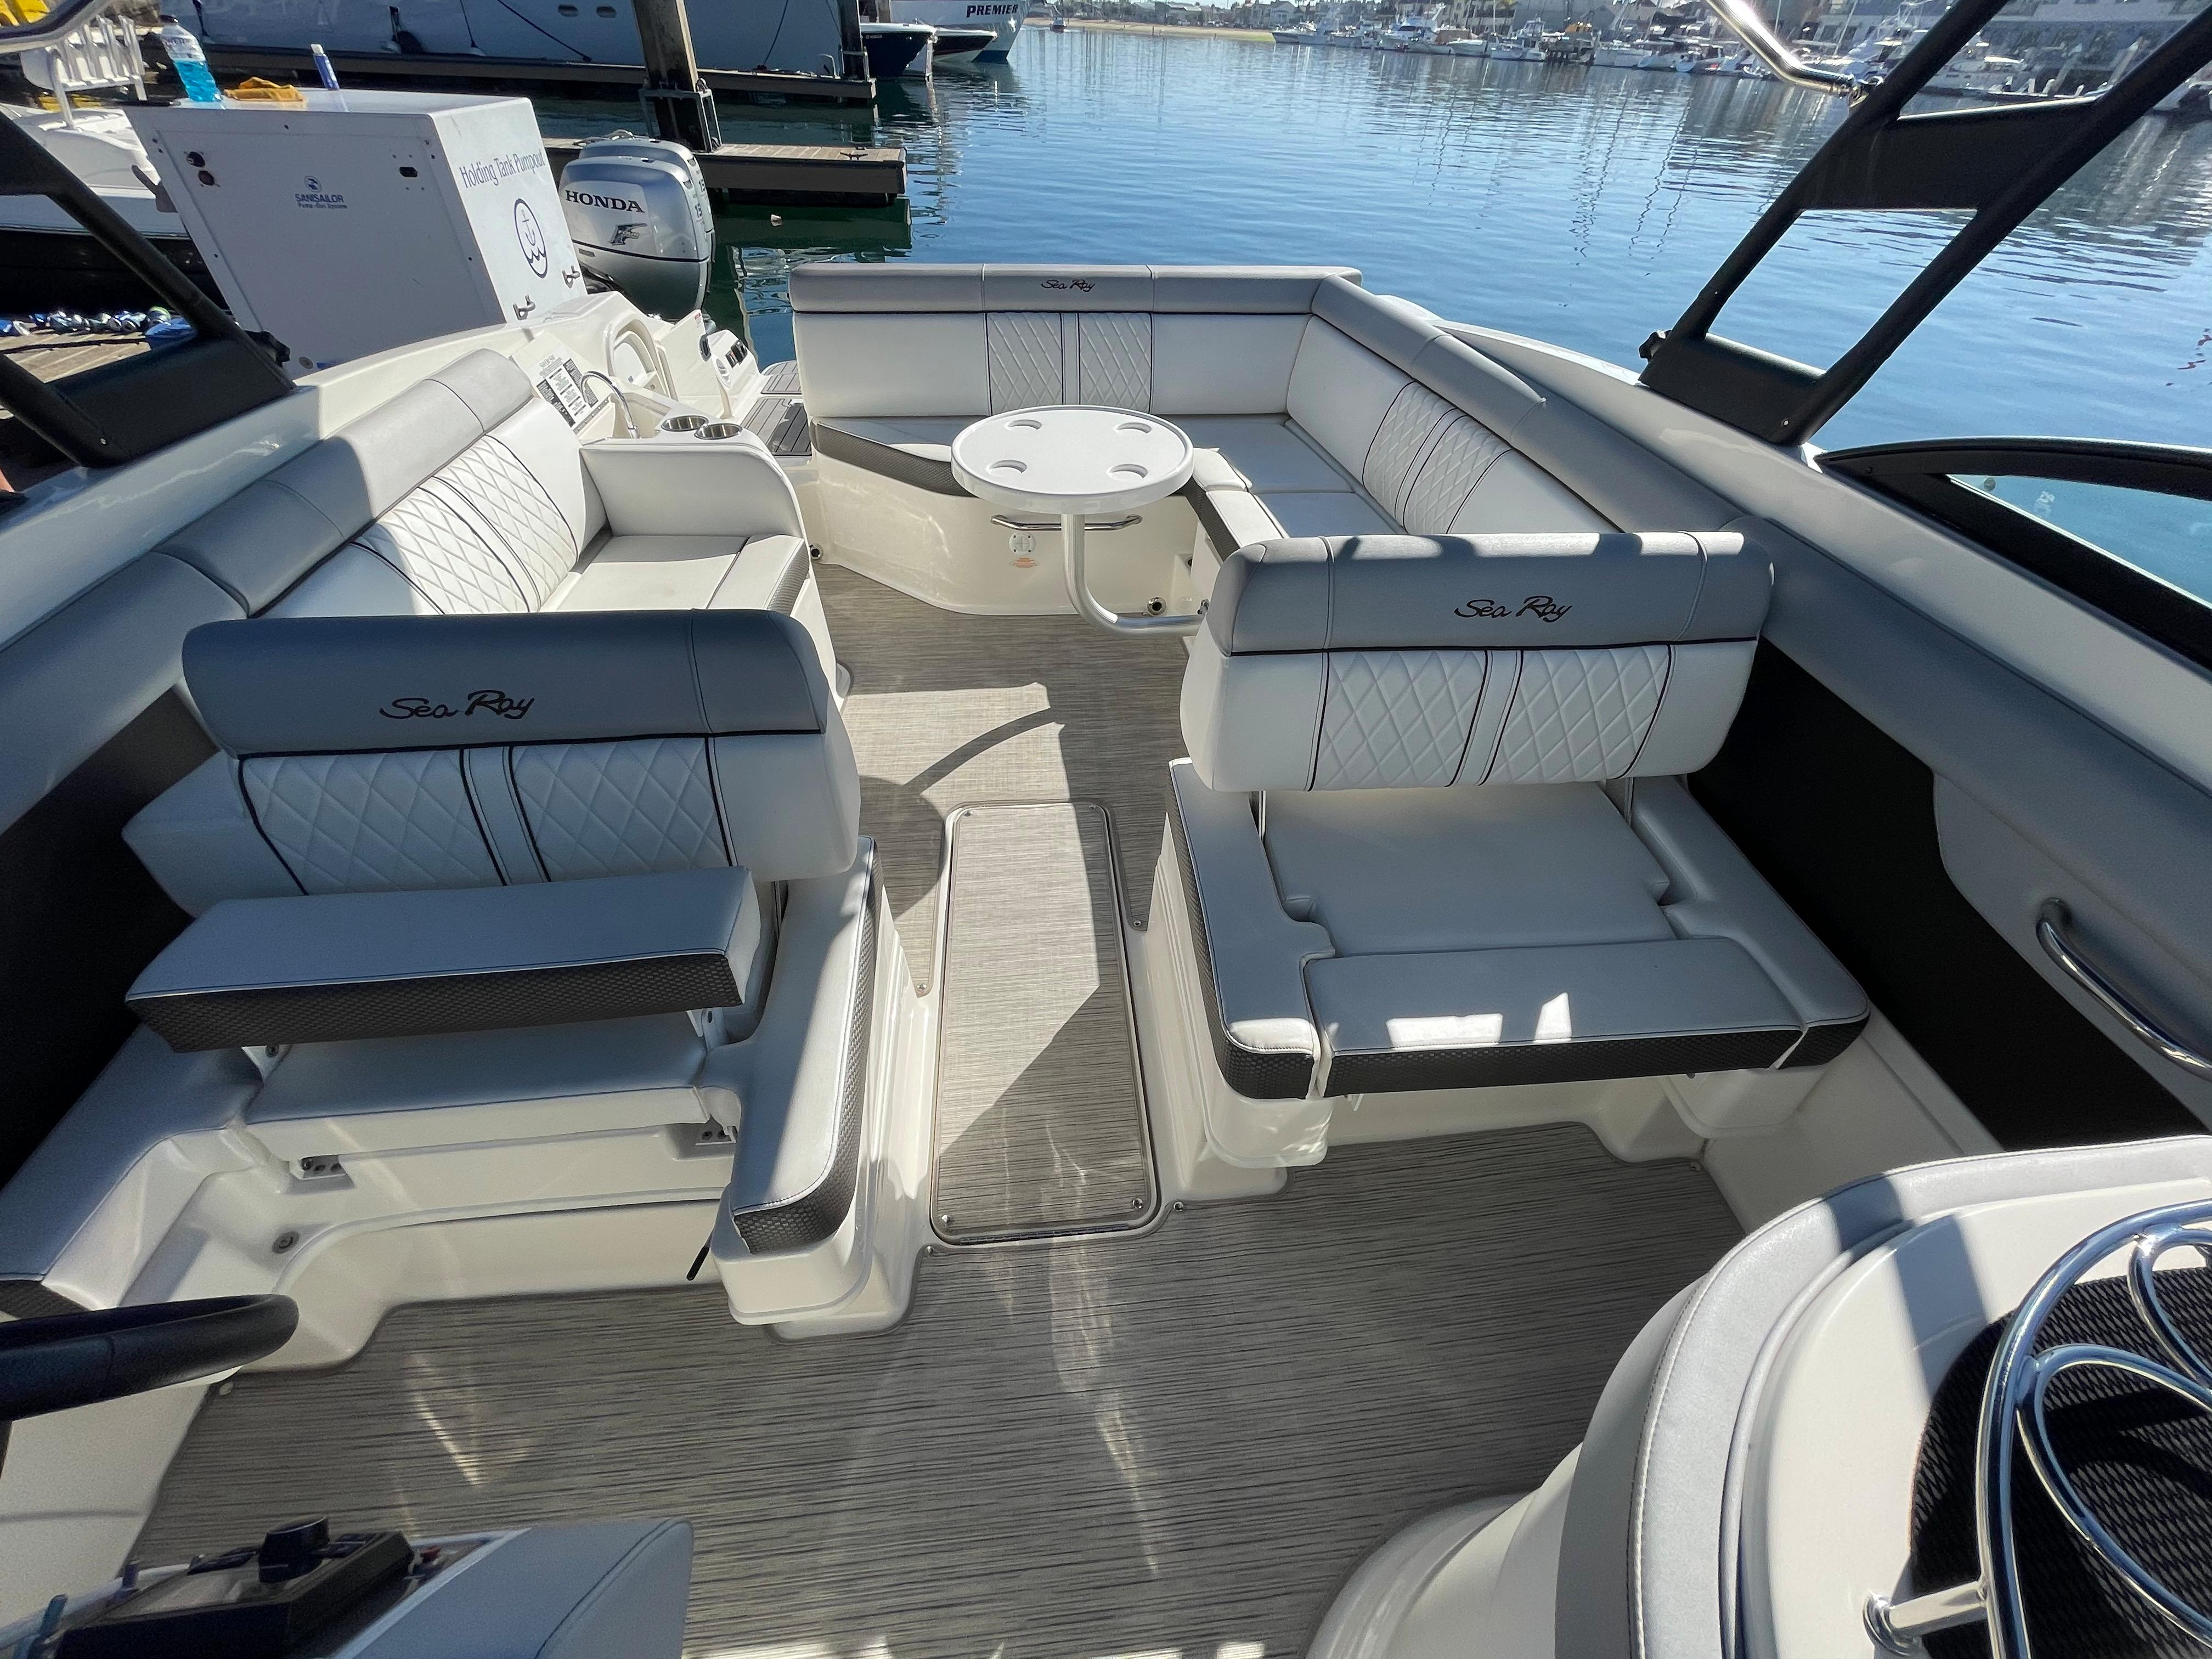 2016 Sea Ray 270 Sundeck #TB3640RL inventory image at Sun Country Coastal in Newport Beach